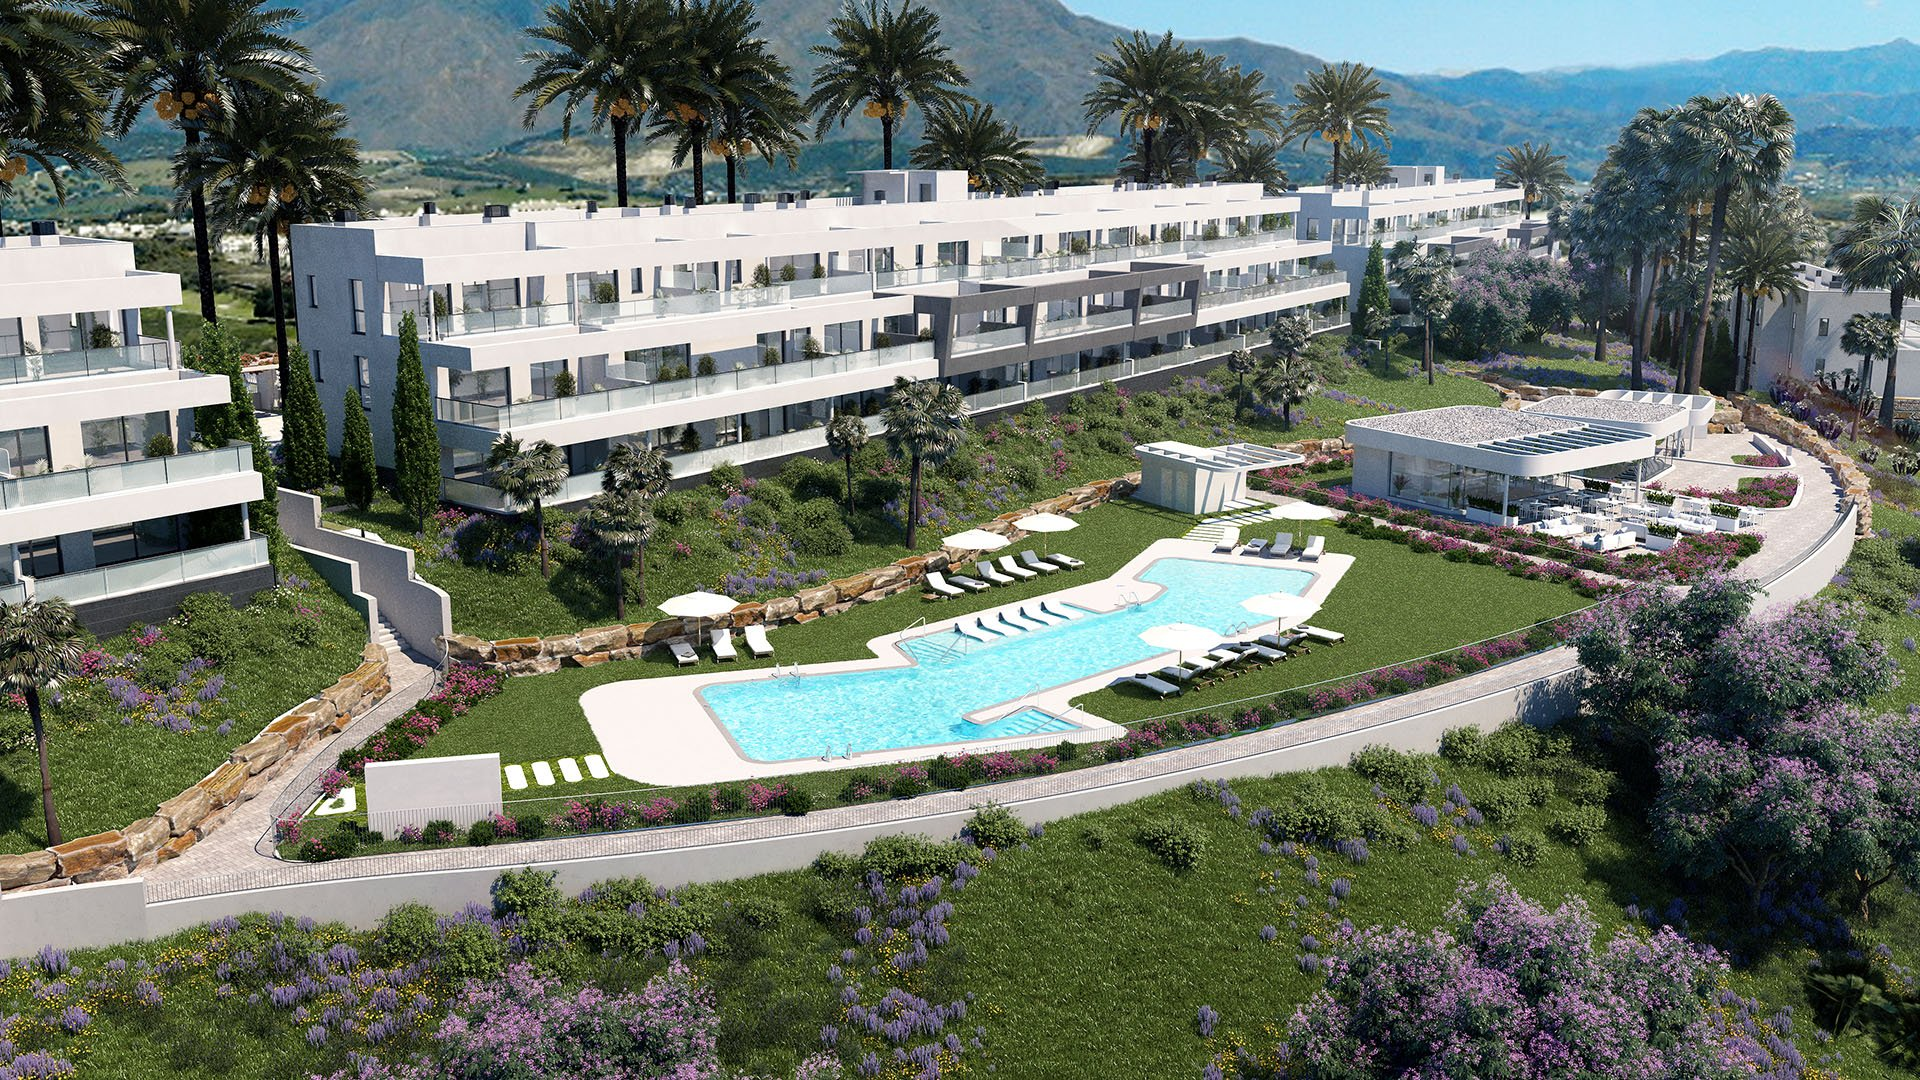 Célere Dona Julia: Apartments within walking distance from the beach in Casares